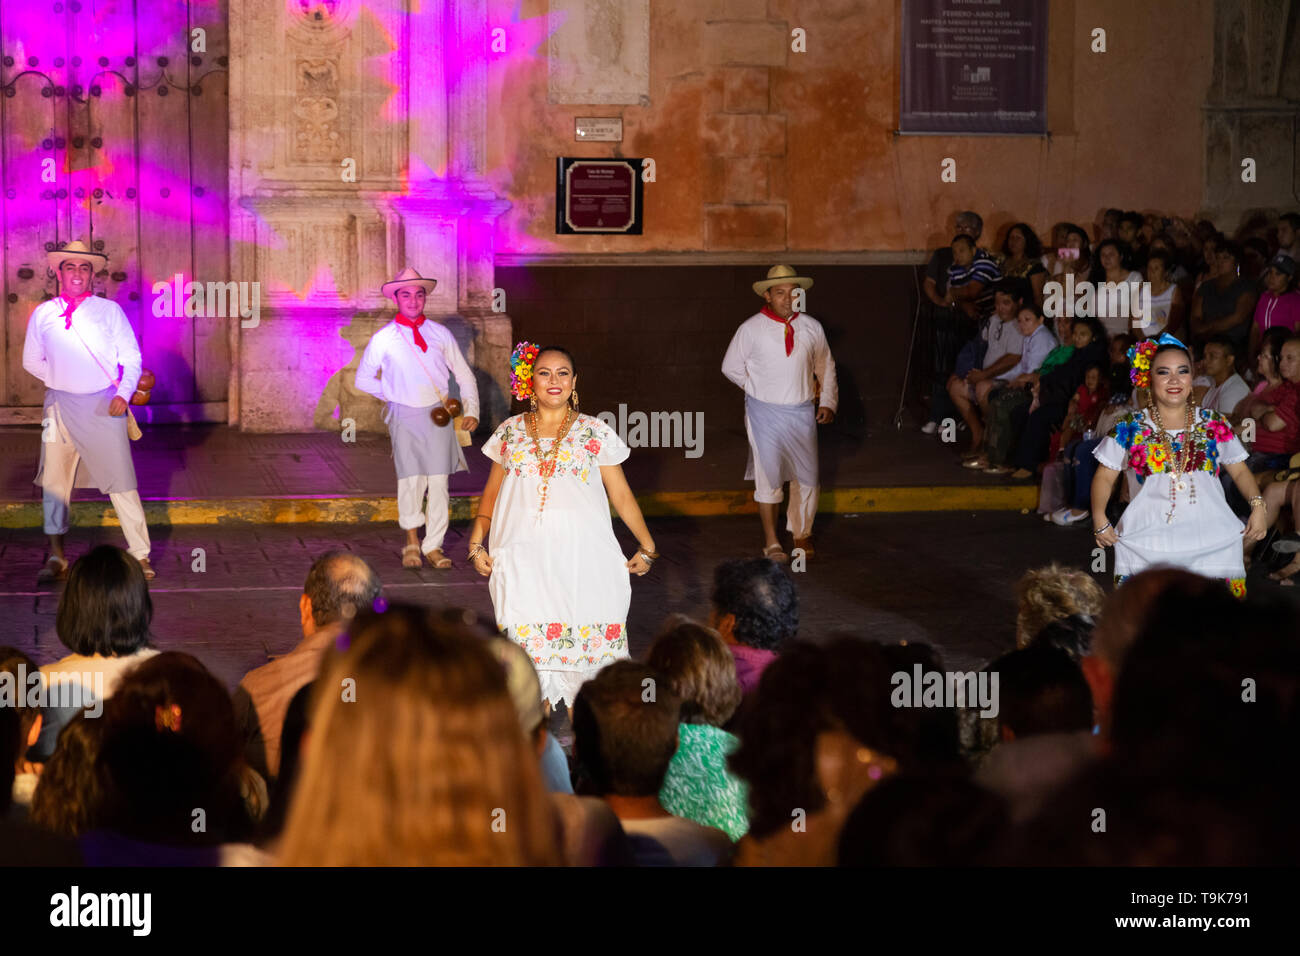 Merida Mexico - dancing show in the street at night by dancers in traditional costume; Merida, Mexico, Latin America - Stock Image